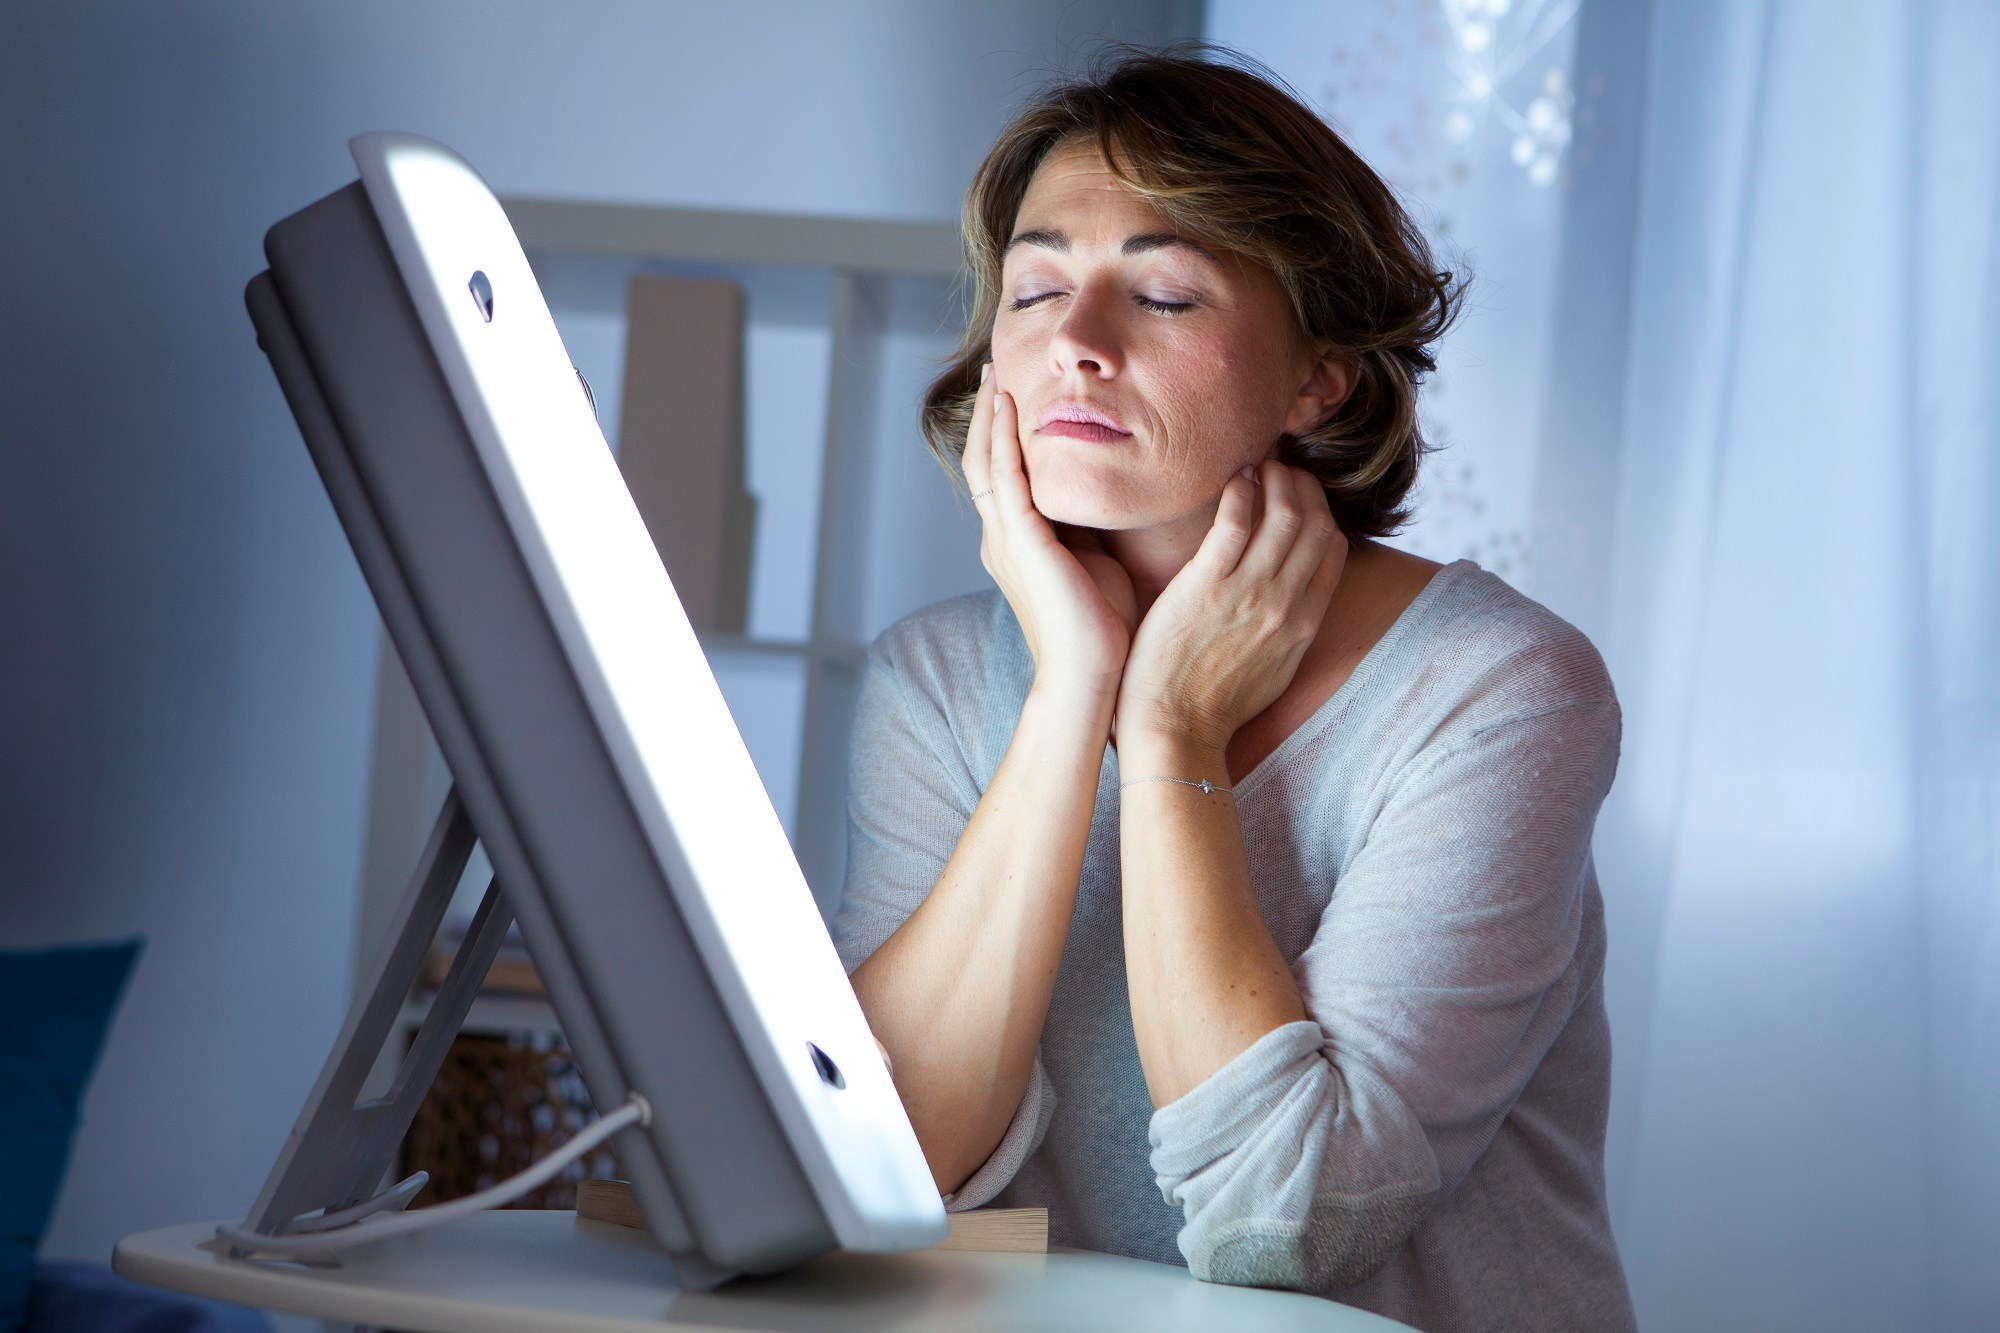 Light Therapy Offers Nonpharmacologic Treatment for Perimenopausal Depression